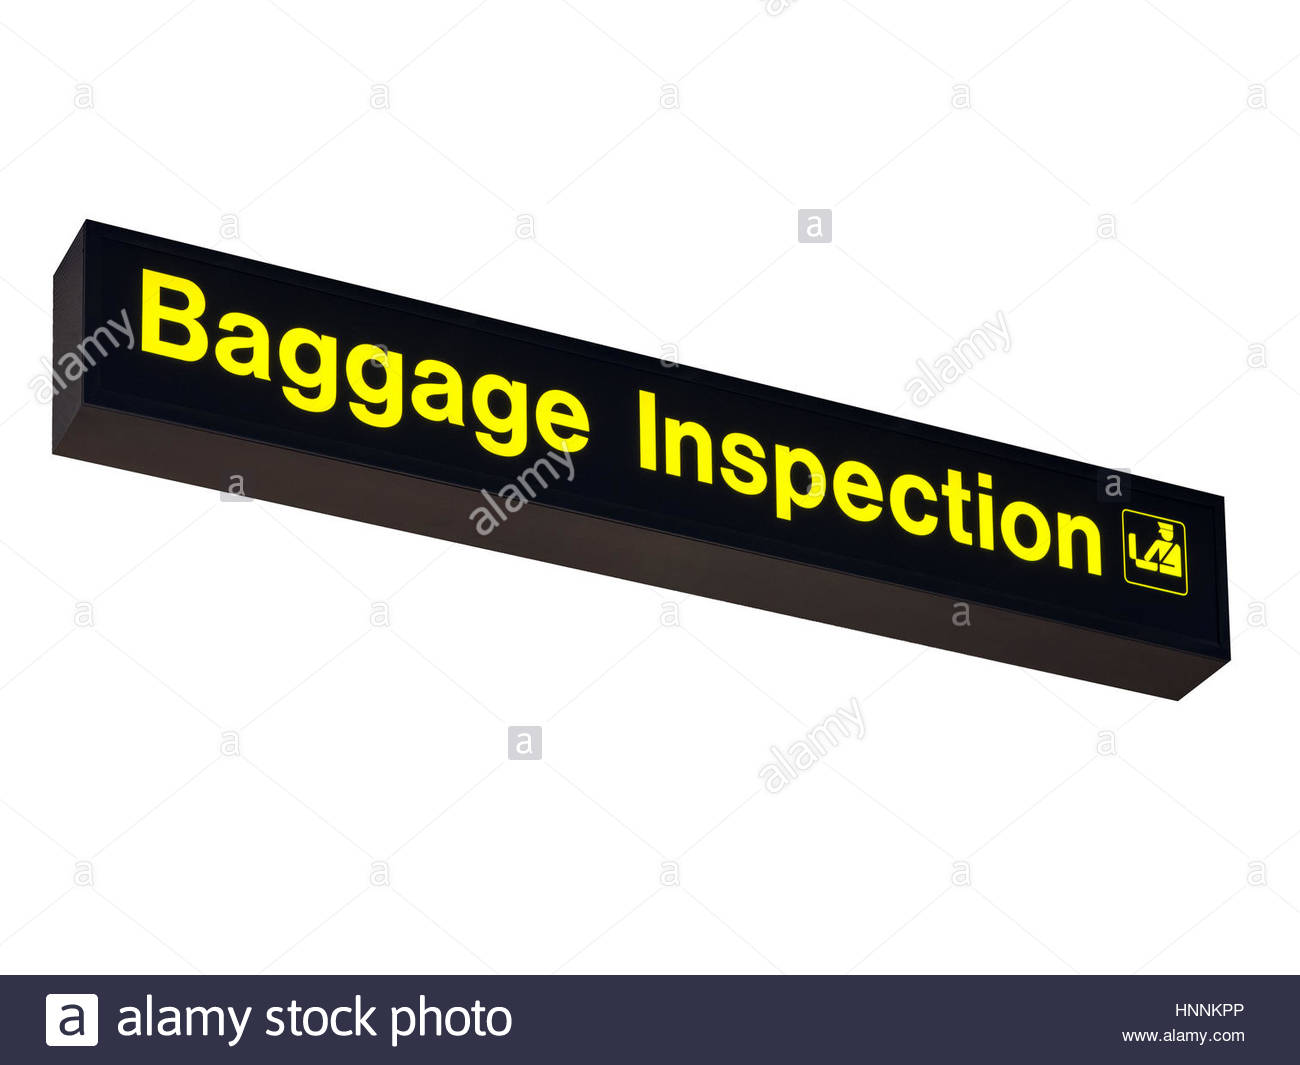 Airport departures Baggage Inspection Sign on White Background - Stock Image